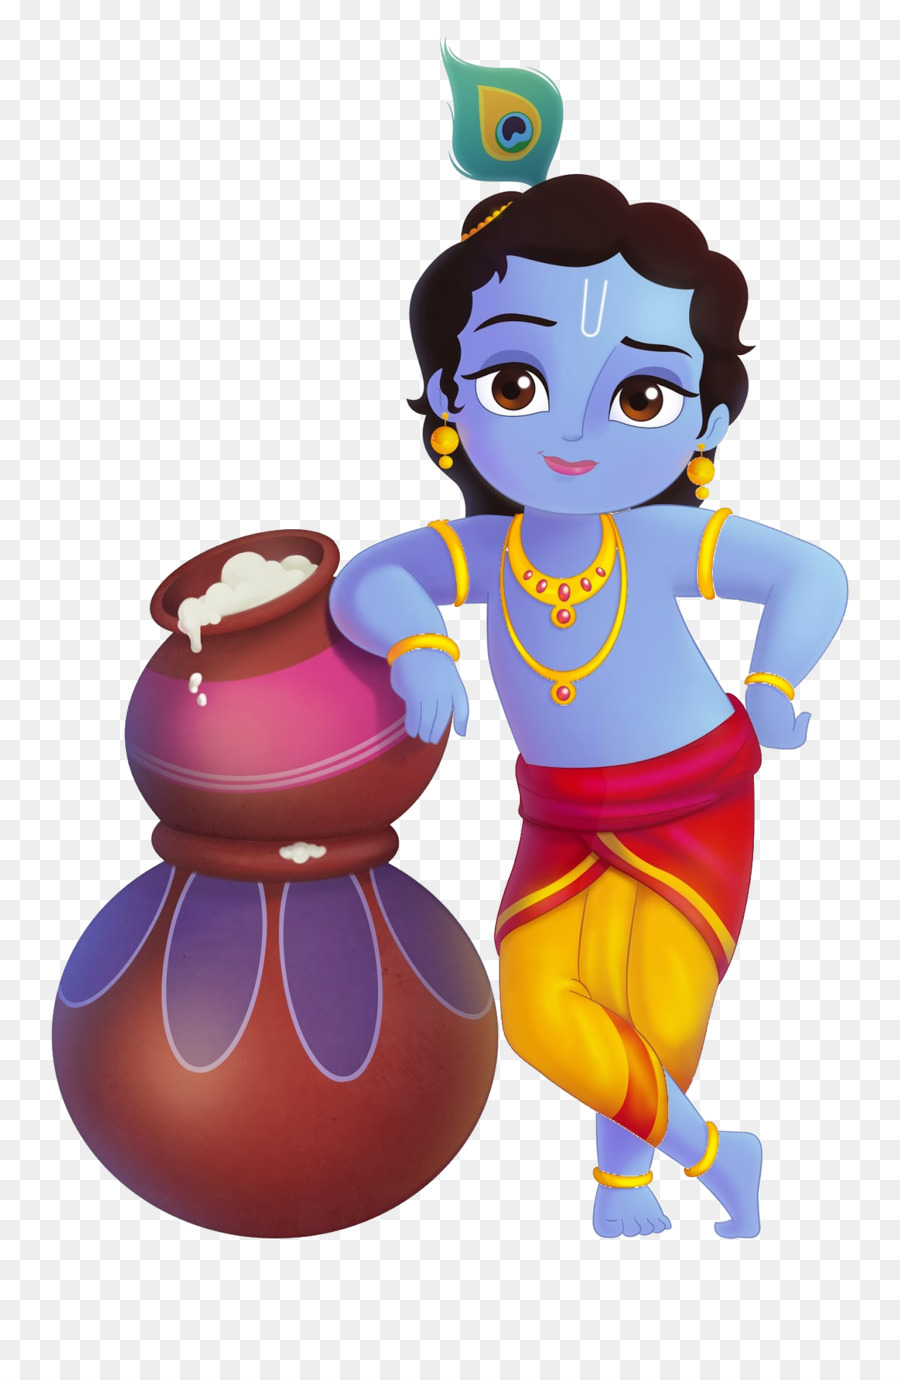 Lord little krishna images free download